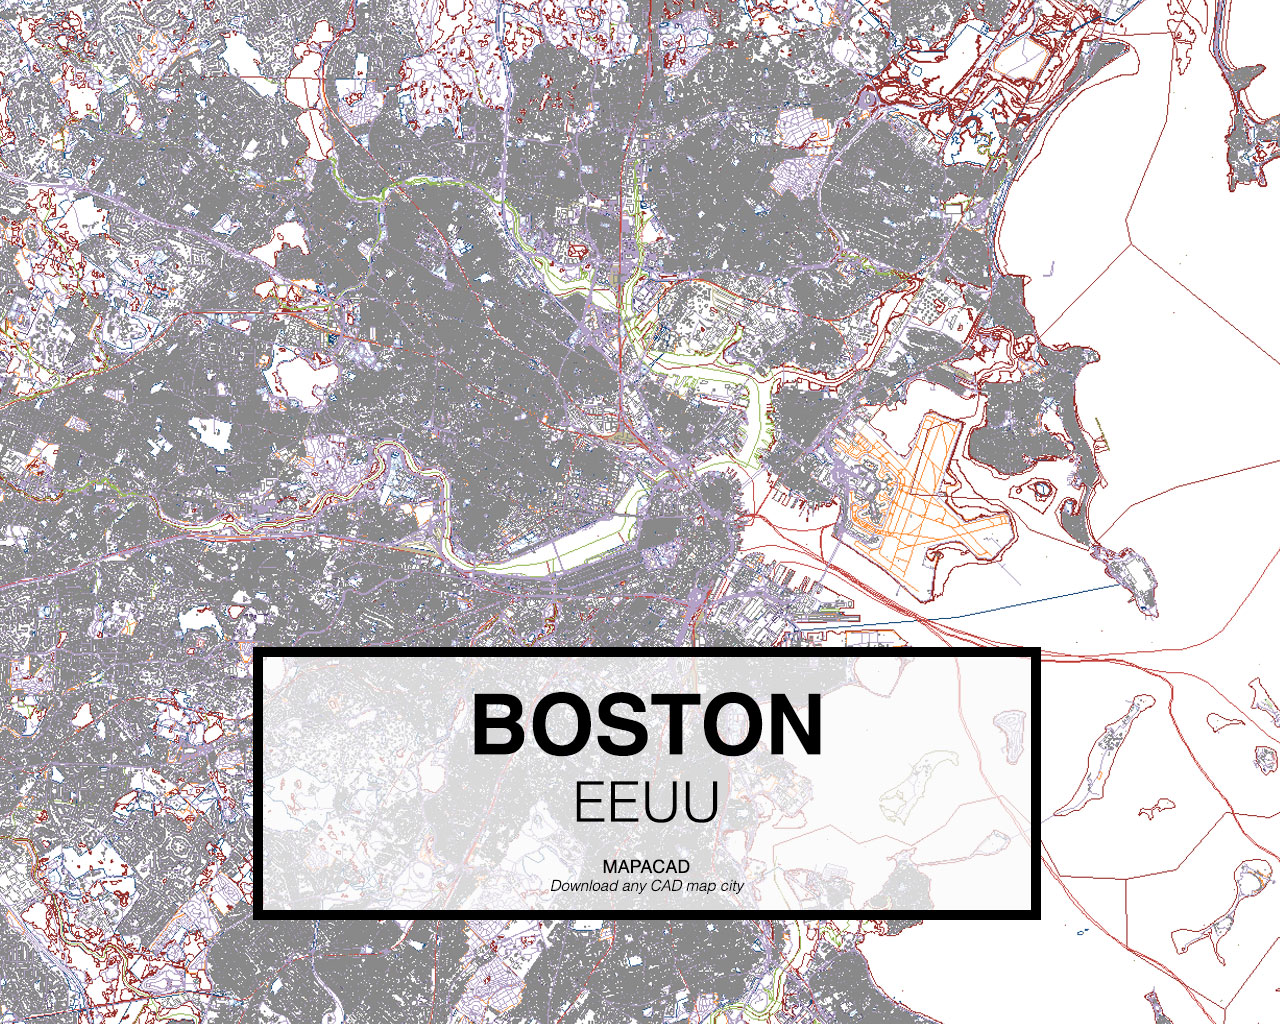 Download boston dwg mapacad boston eeuu 01 mapacad download map cad dwg gumiabroncs Gallery